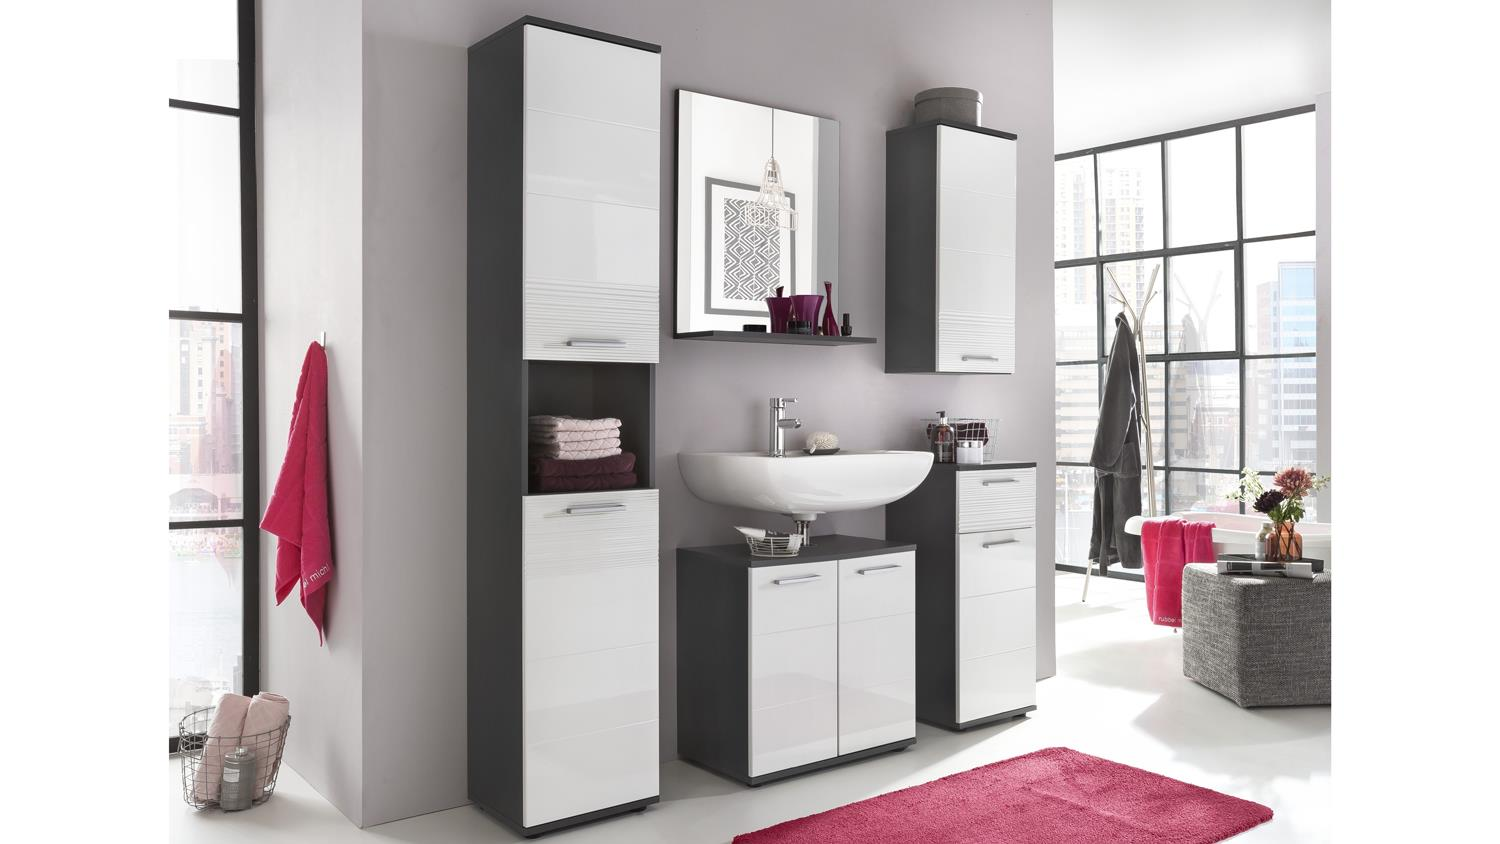 spiegel smart bad wandspiegel in grau matt mit 1 ablageboden 60x71 cm. Black Bedroom Furniture Sets. Home Design Ideas